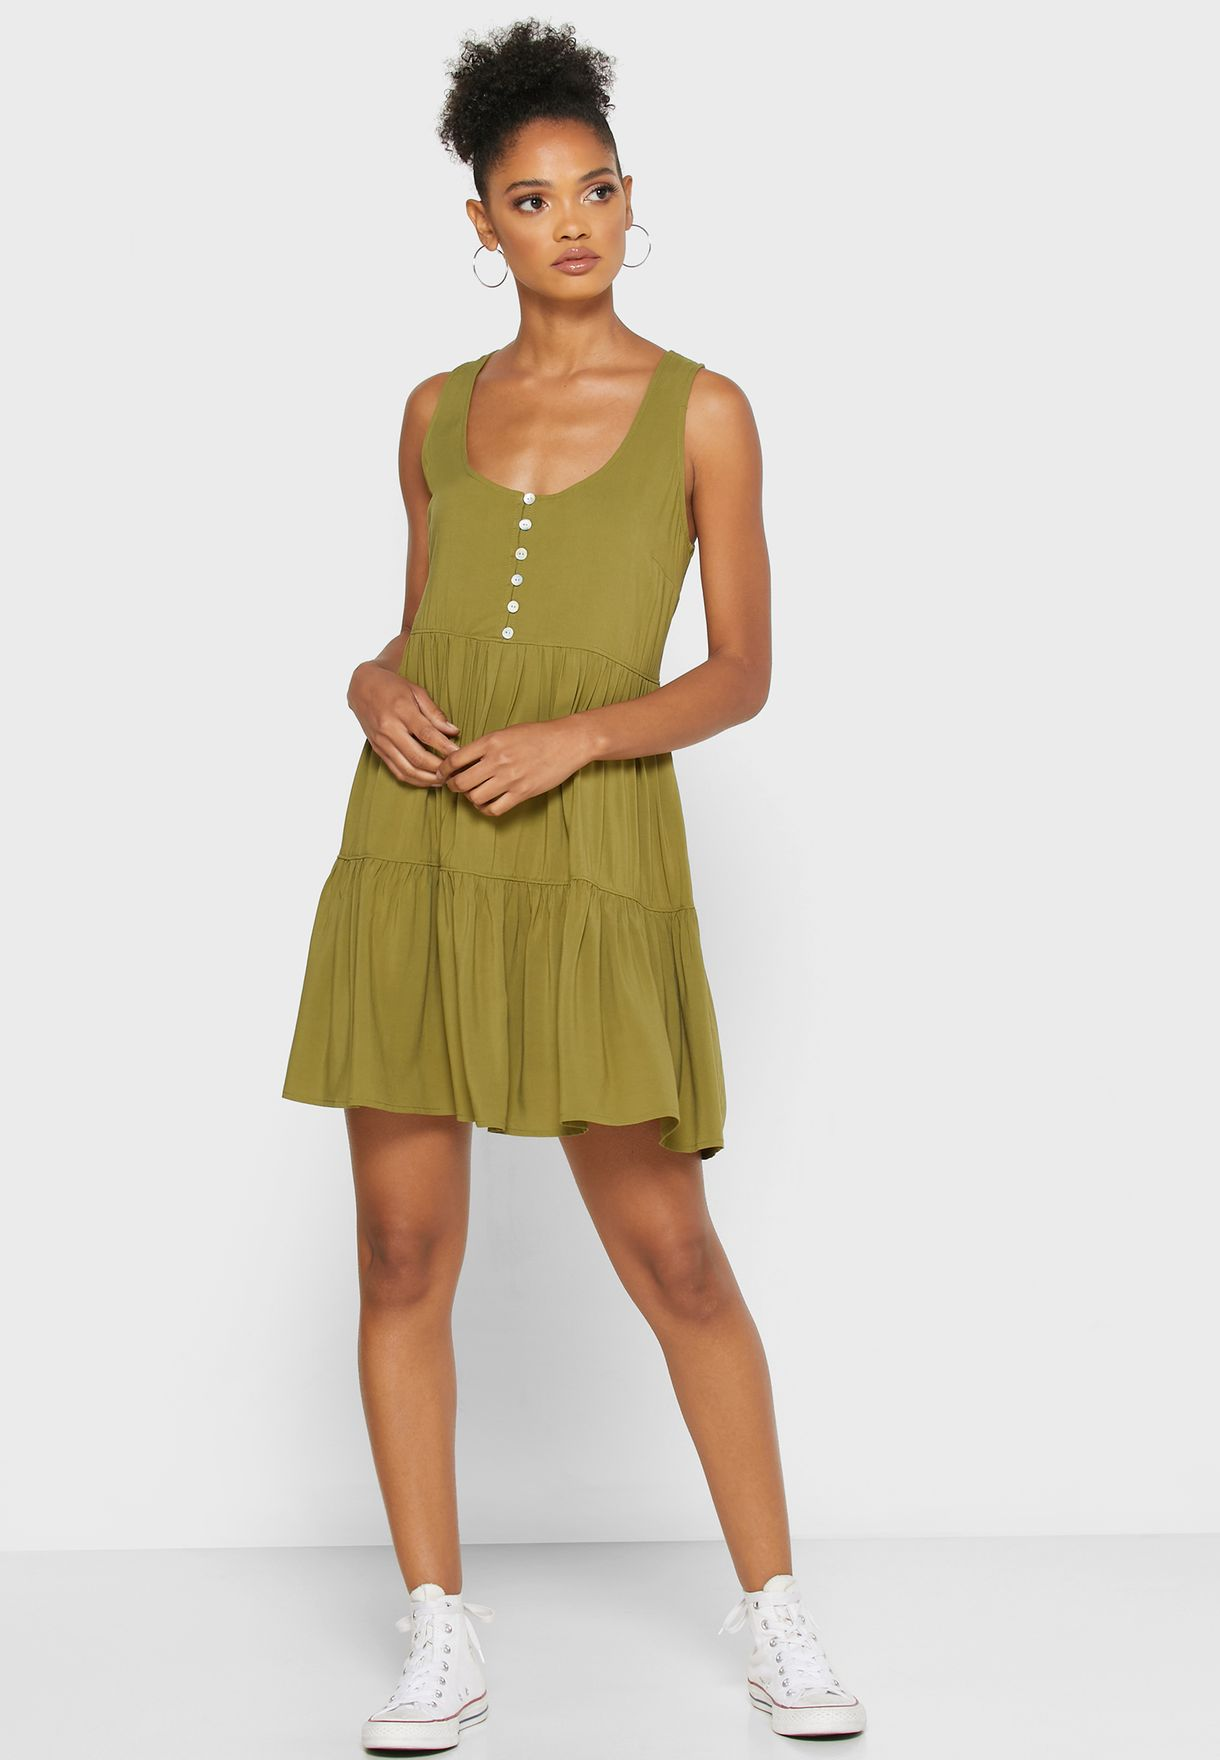 Forever 21 Pleated Button Detail Dress - Women Clothing VFaGp